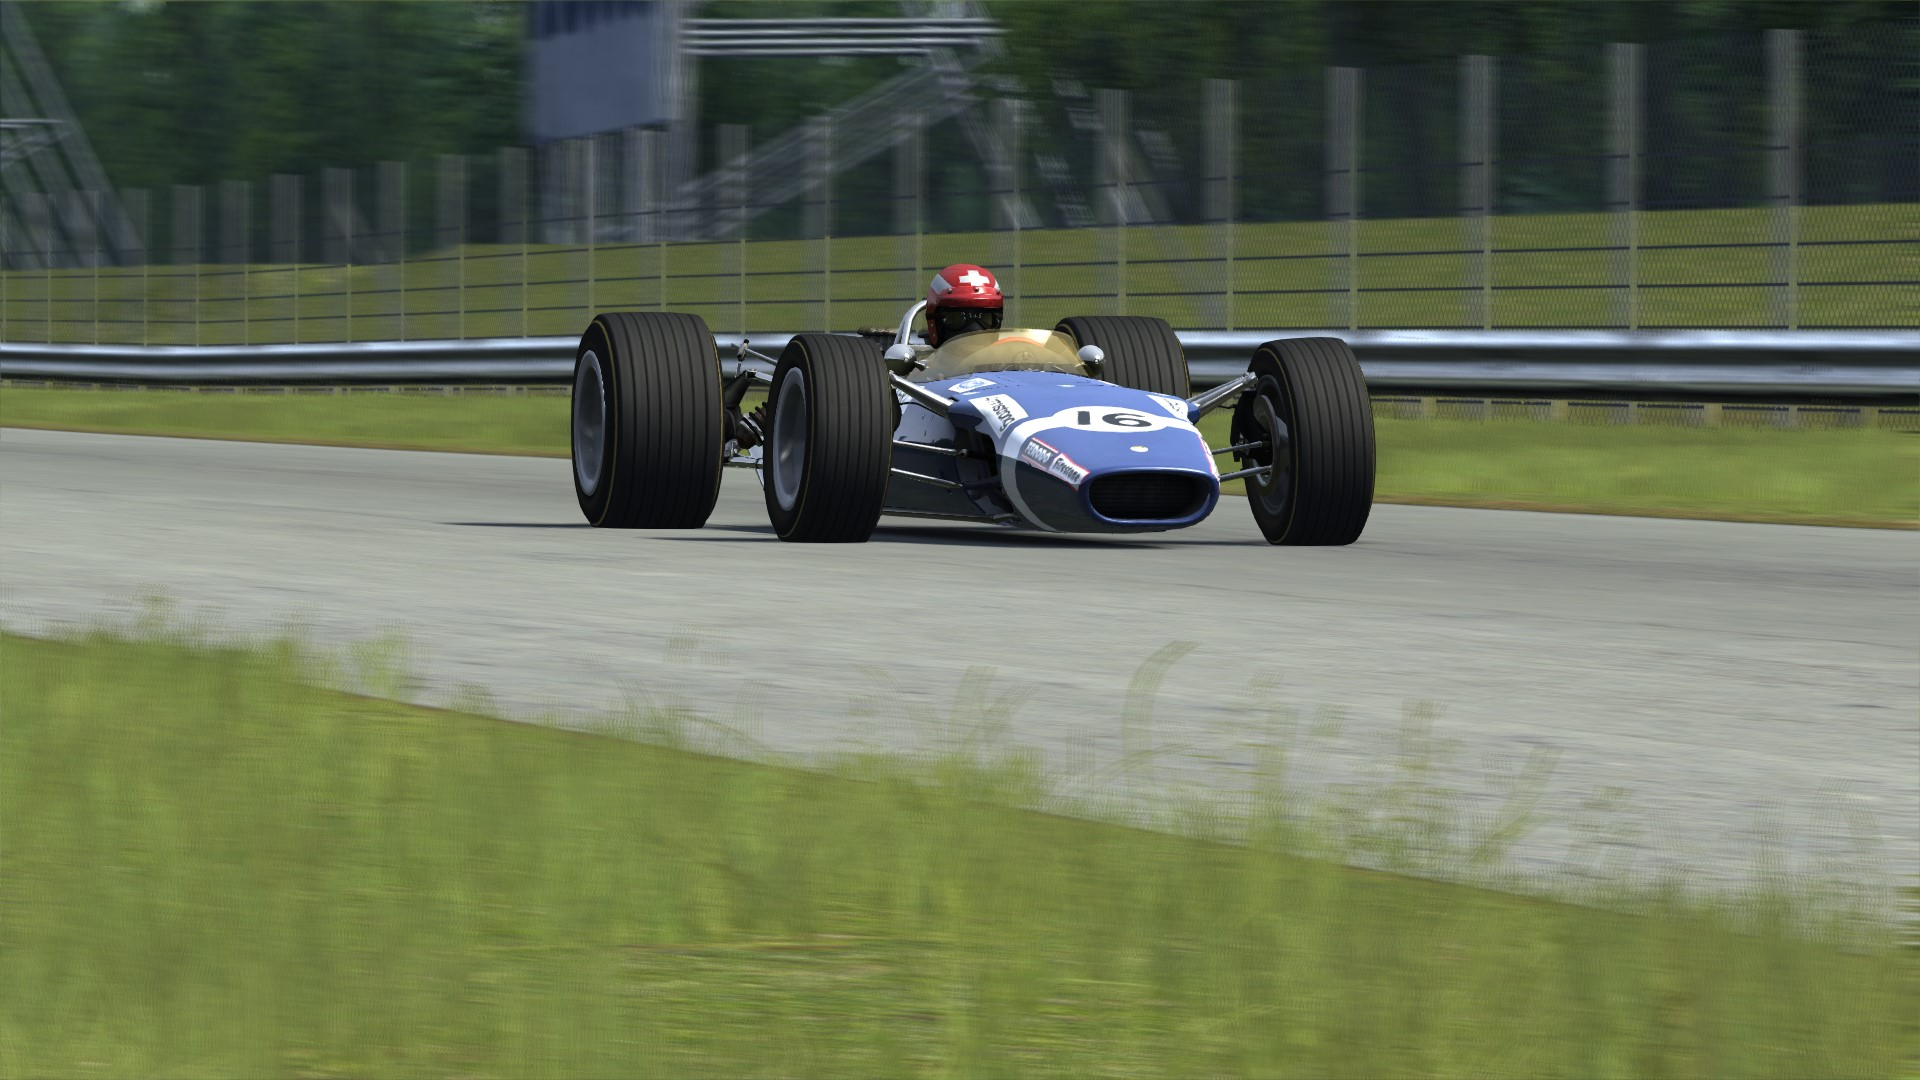 Screenshot_lotus_49_monza66_14-12-2013-0-17-35.jpg